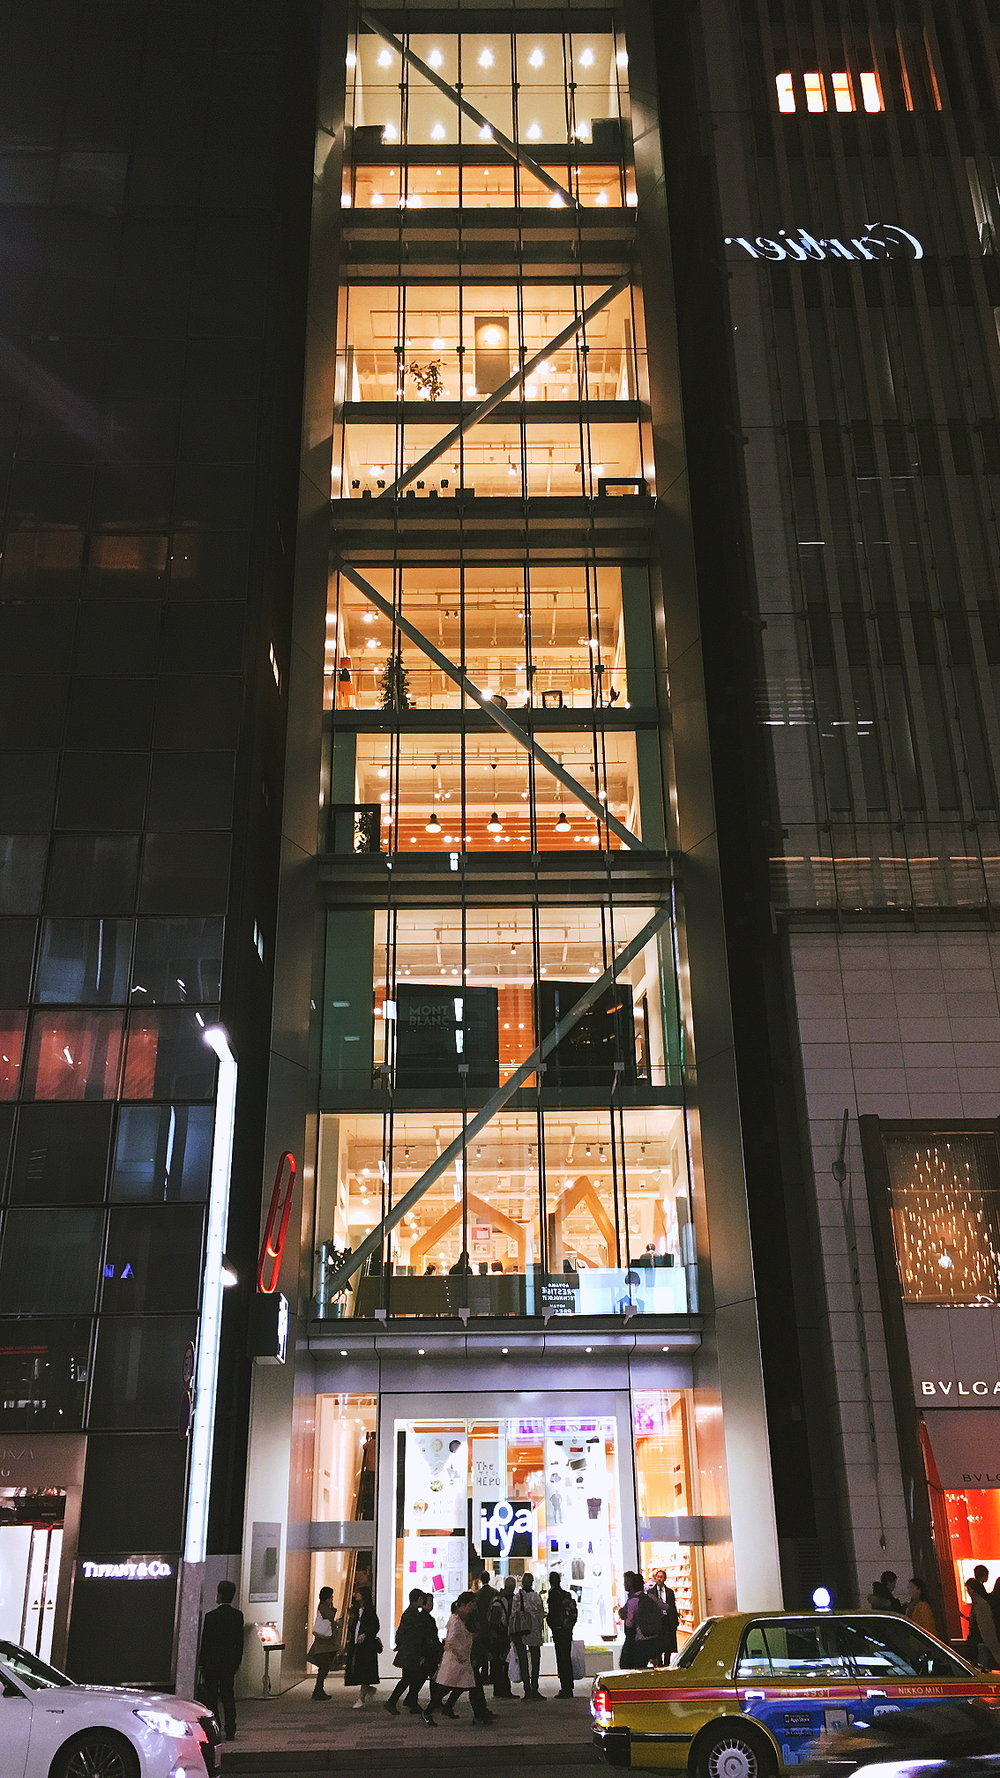 Itoya, Ginza store-front. All the floors here are stocked with stationery.